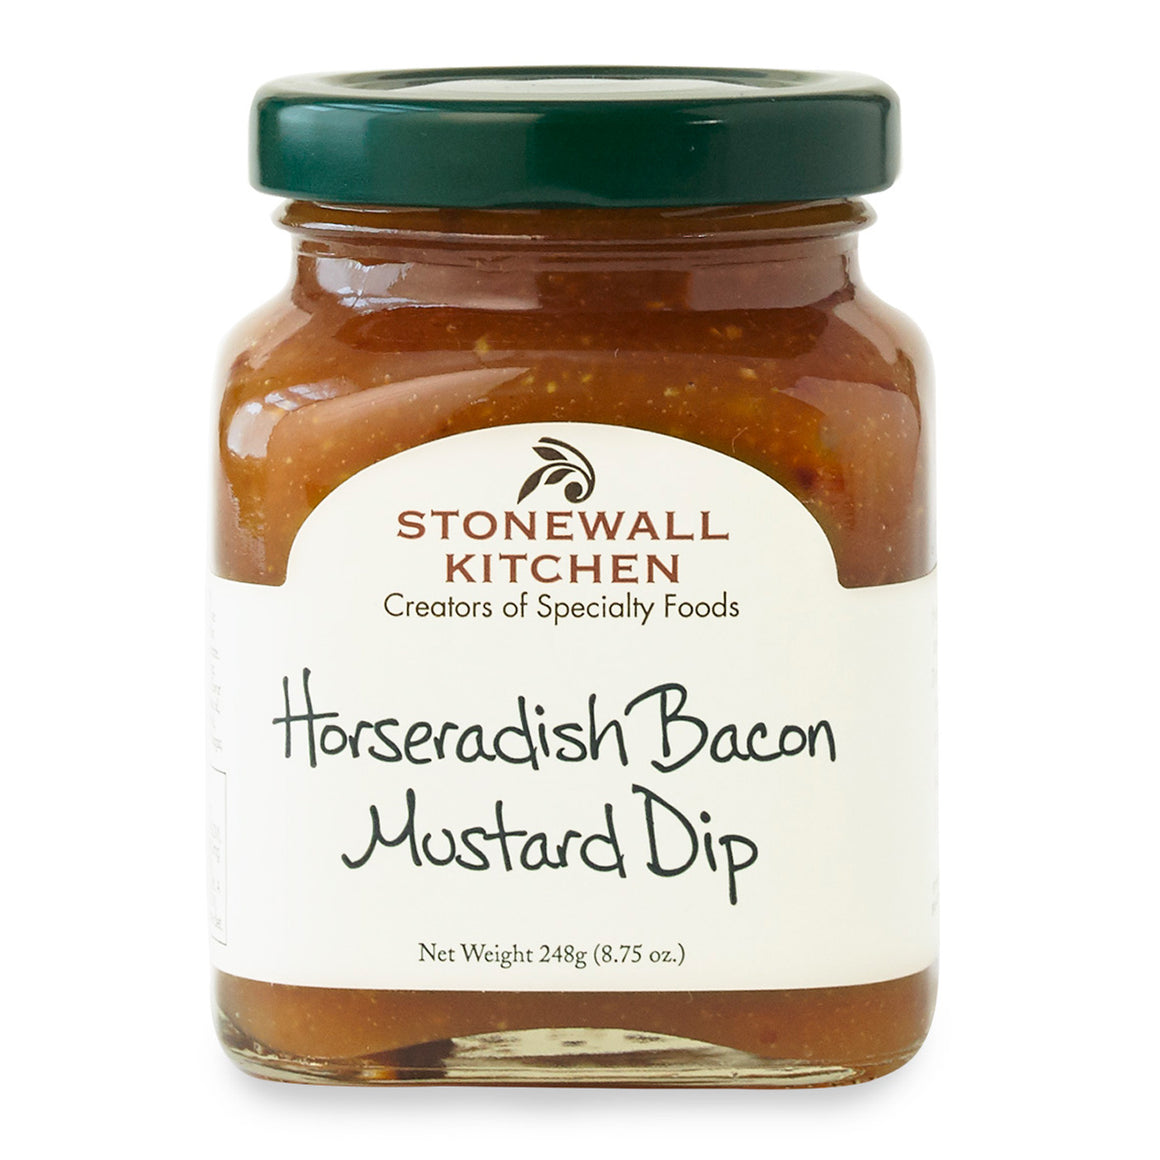 Horseradish Bacon Mustard Dip by Stonewall Kitchen